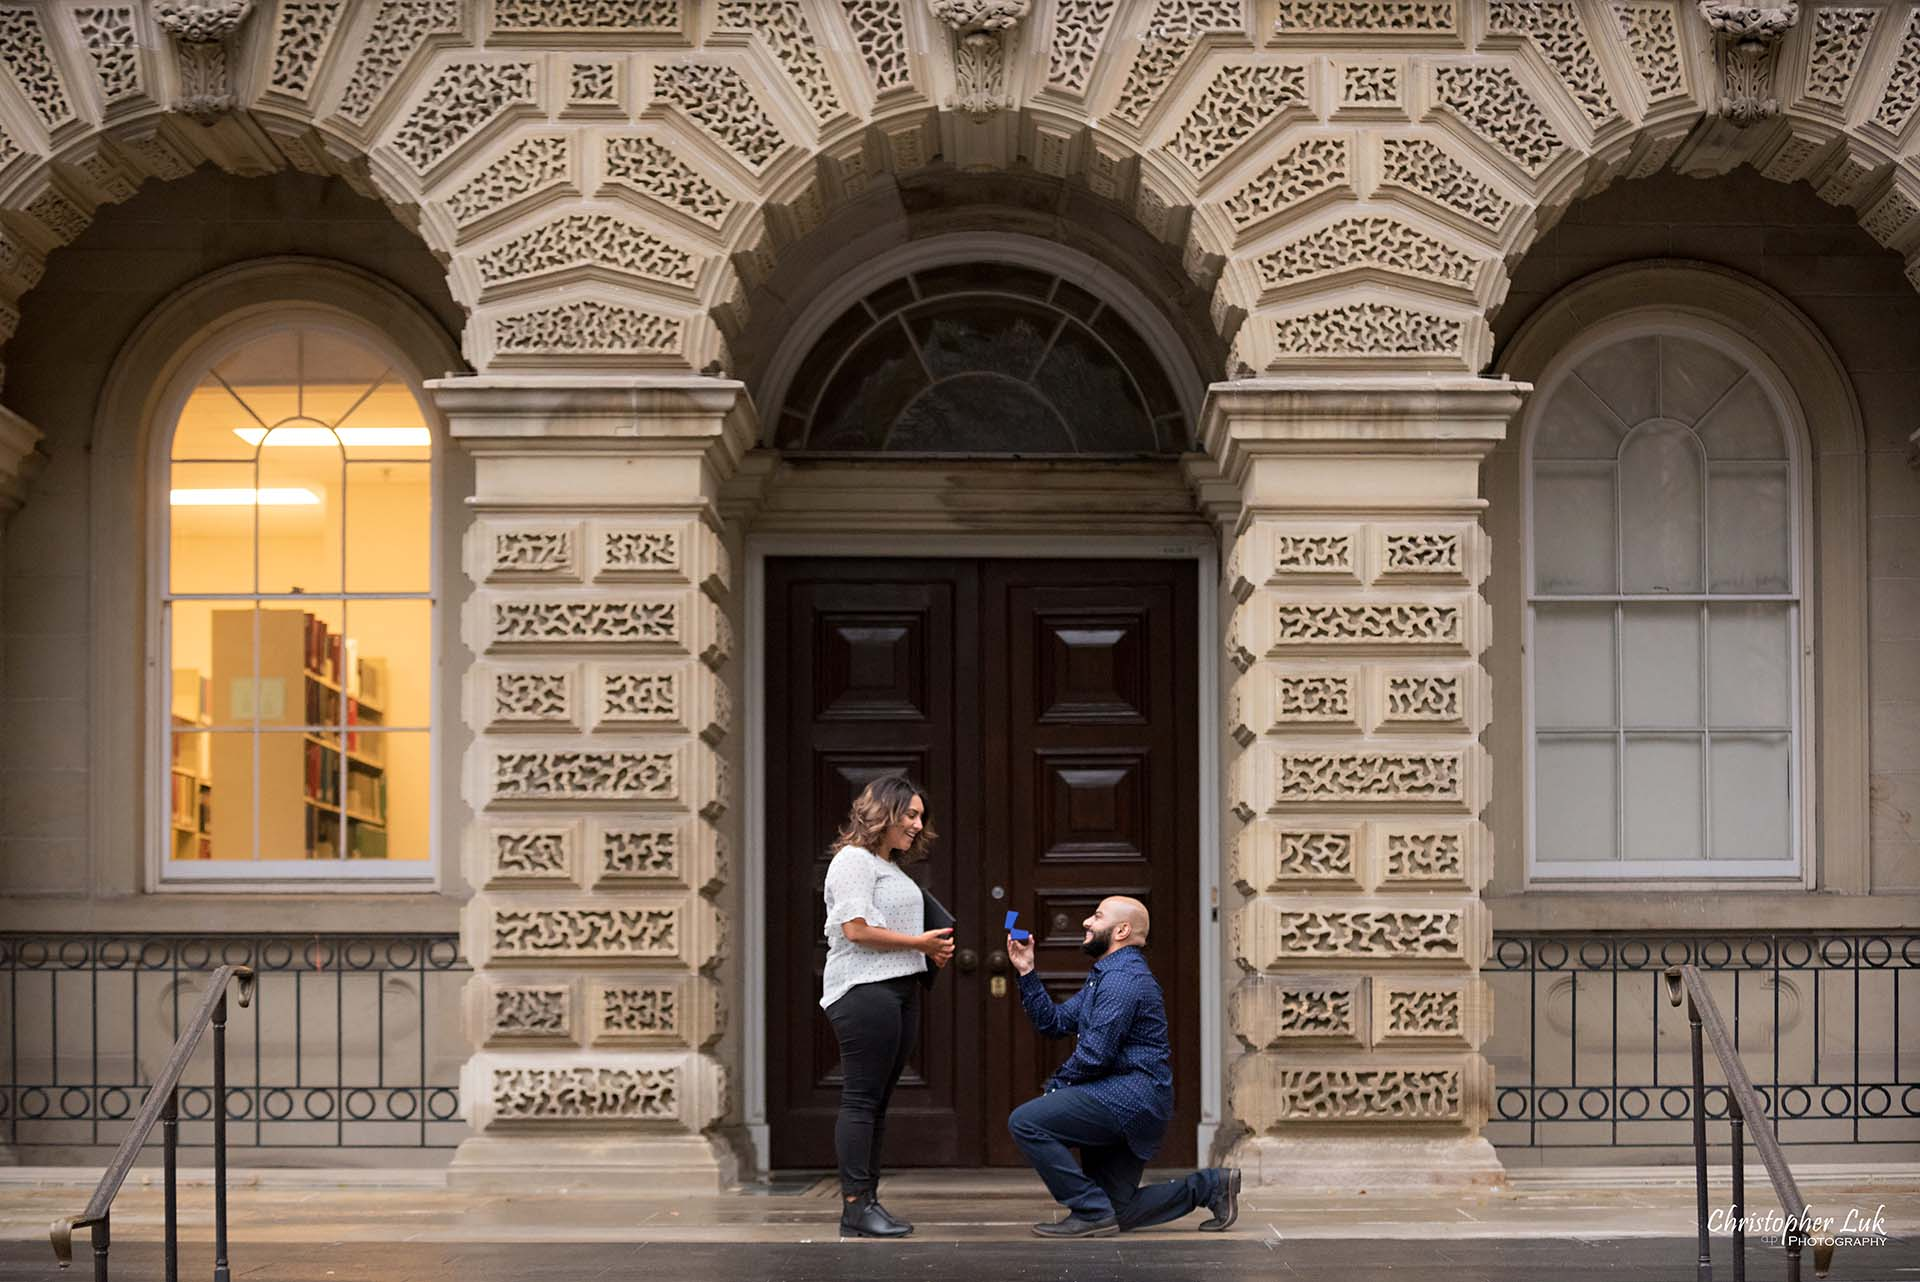 Christopher Luk Toronto Wedding Photographer - Toronto Osgoode Hall Surprise Proposal Engaged Engagement Will You Marry Me She Said Yes Natural Candid Photojournalistic - Fiancé Fiancée Bride Groom Kneel One Knee Ring